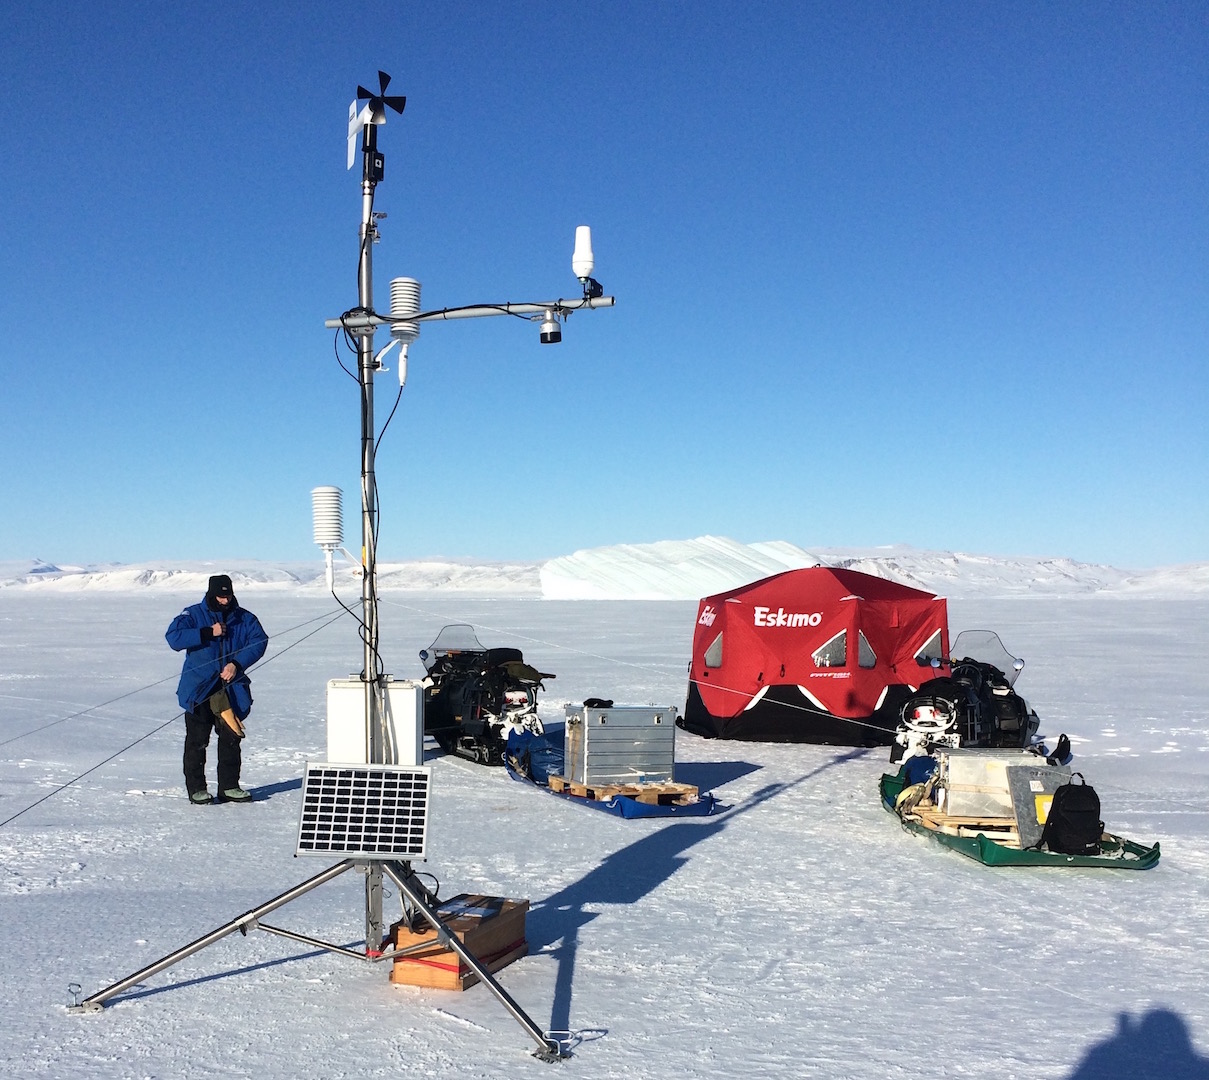 Installation of Automated Weather Station on Mar.-23, 2017 near Thule, Greenland via snowmobile. The station includes a satellite connection to the internet and a cable to the ocean.